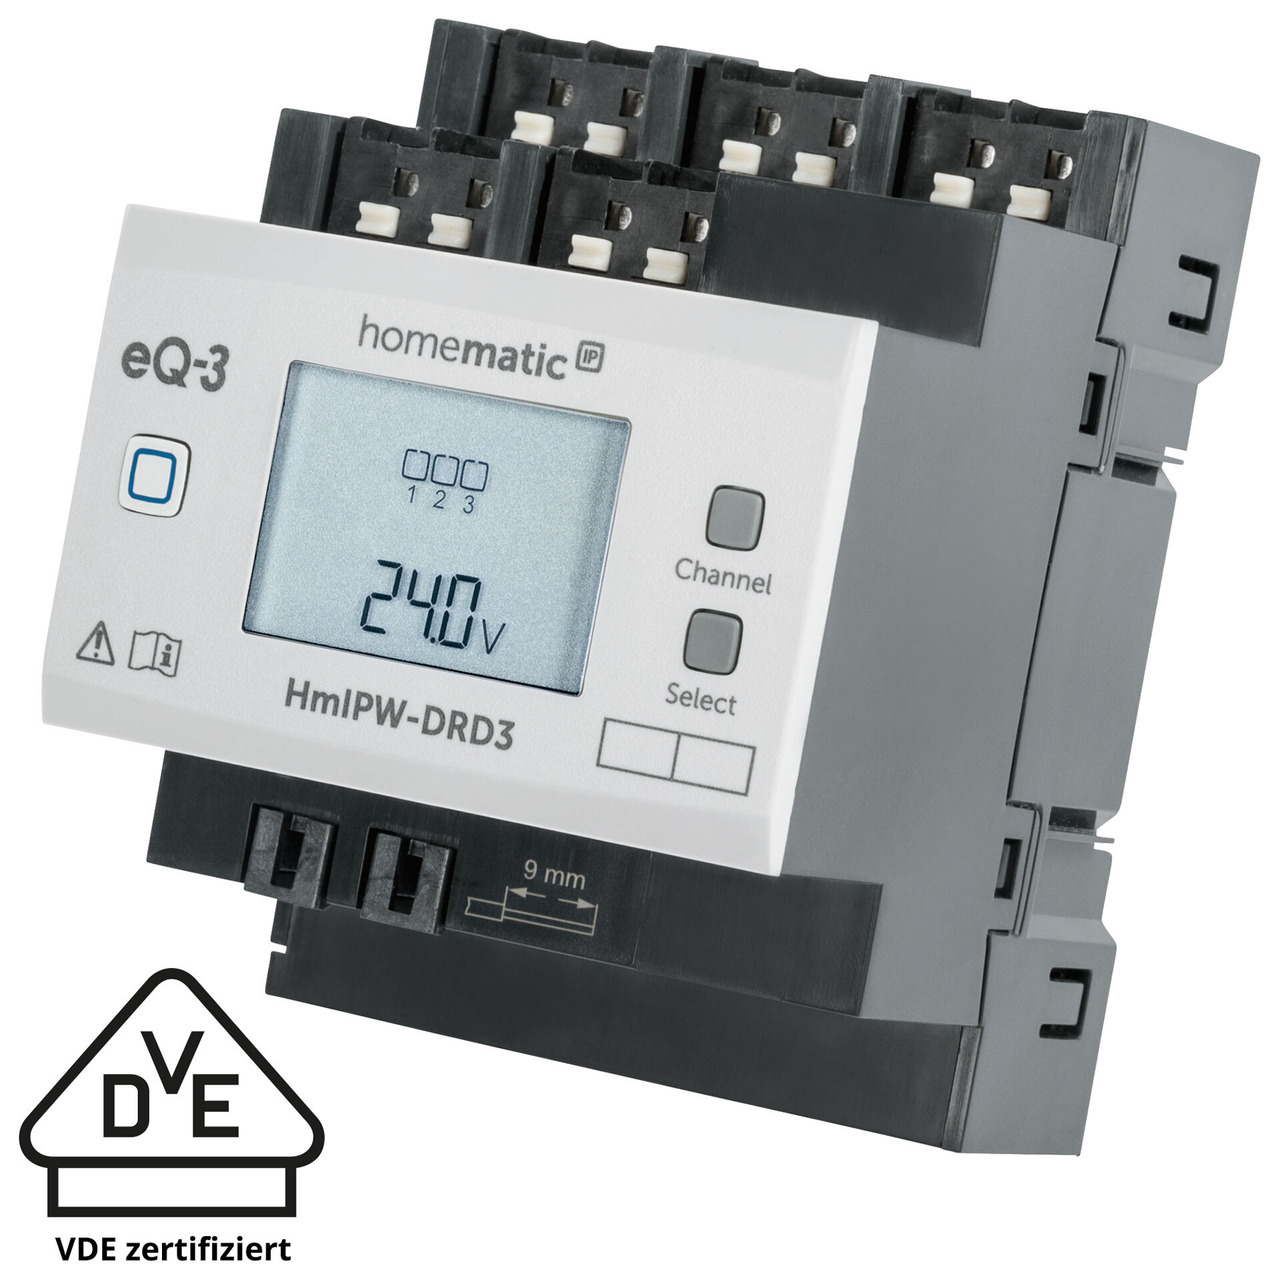 Homematic IP Wired 3-fach-Dimmaktor HmIPW-DRD3- VDE zertifiziert